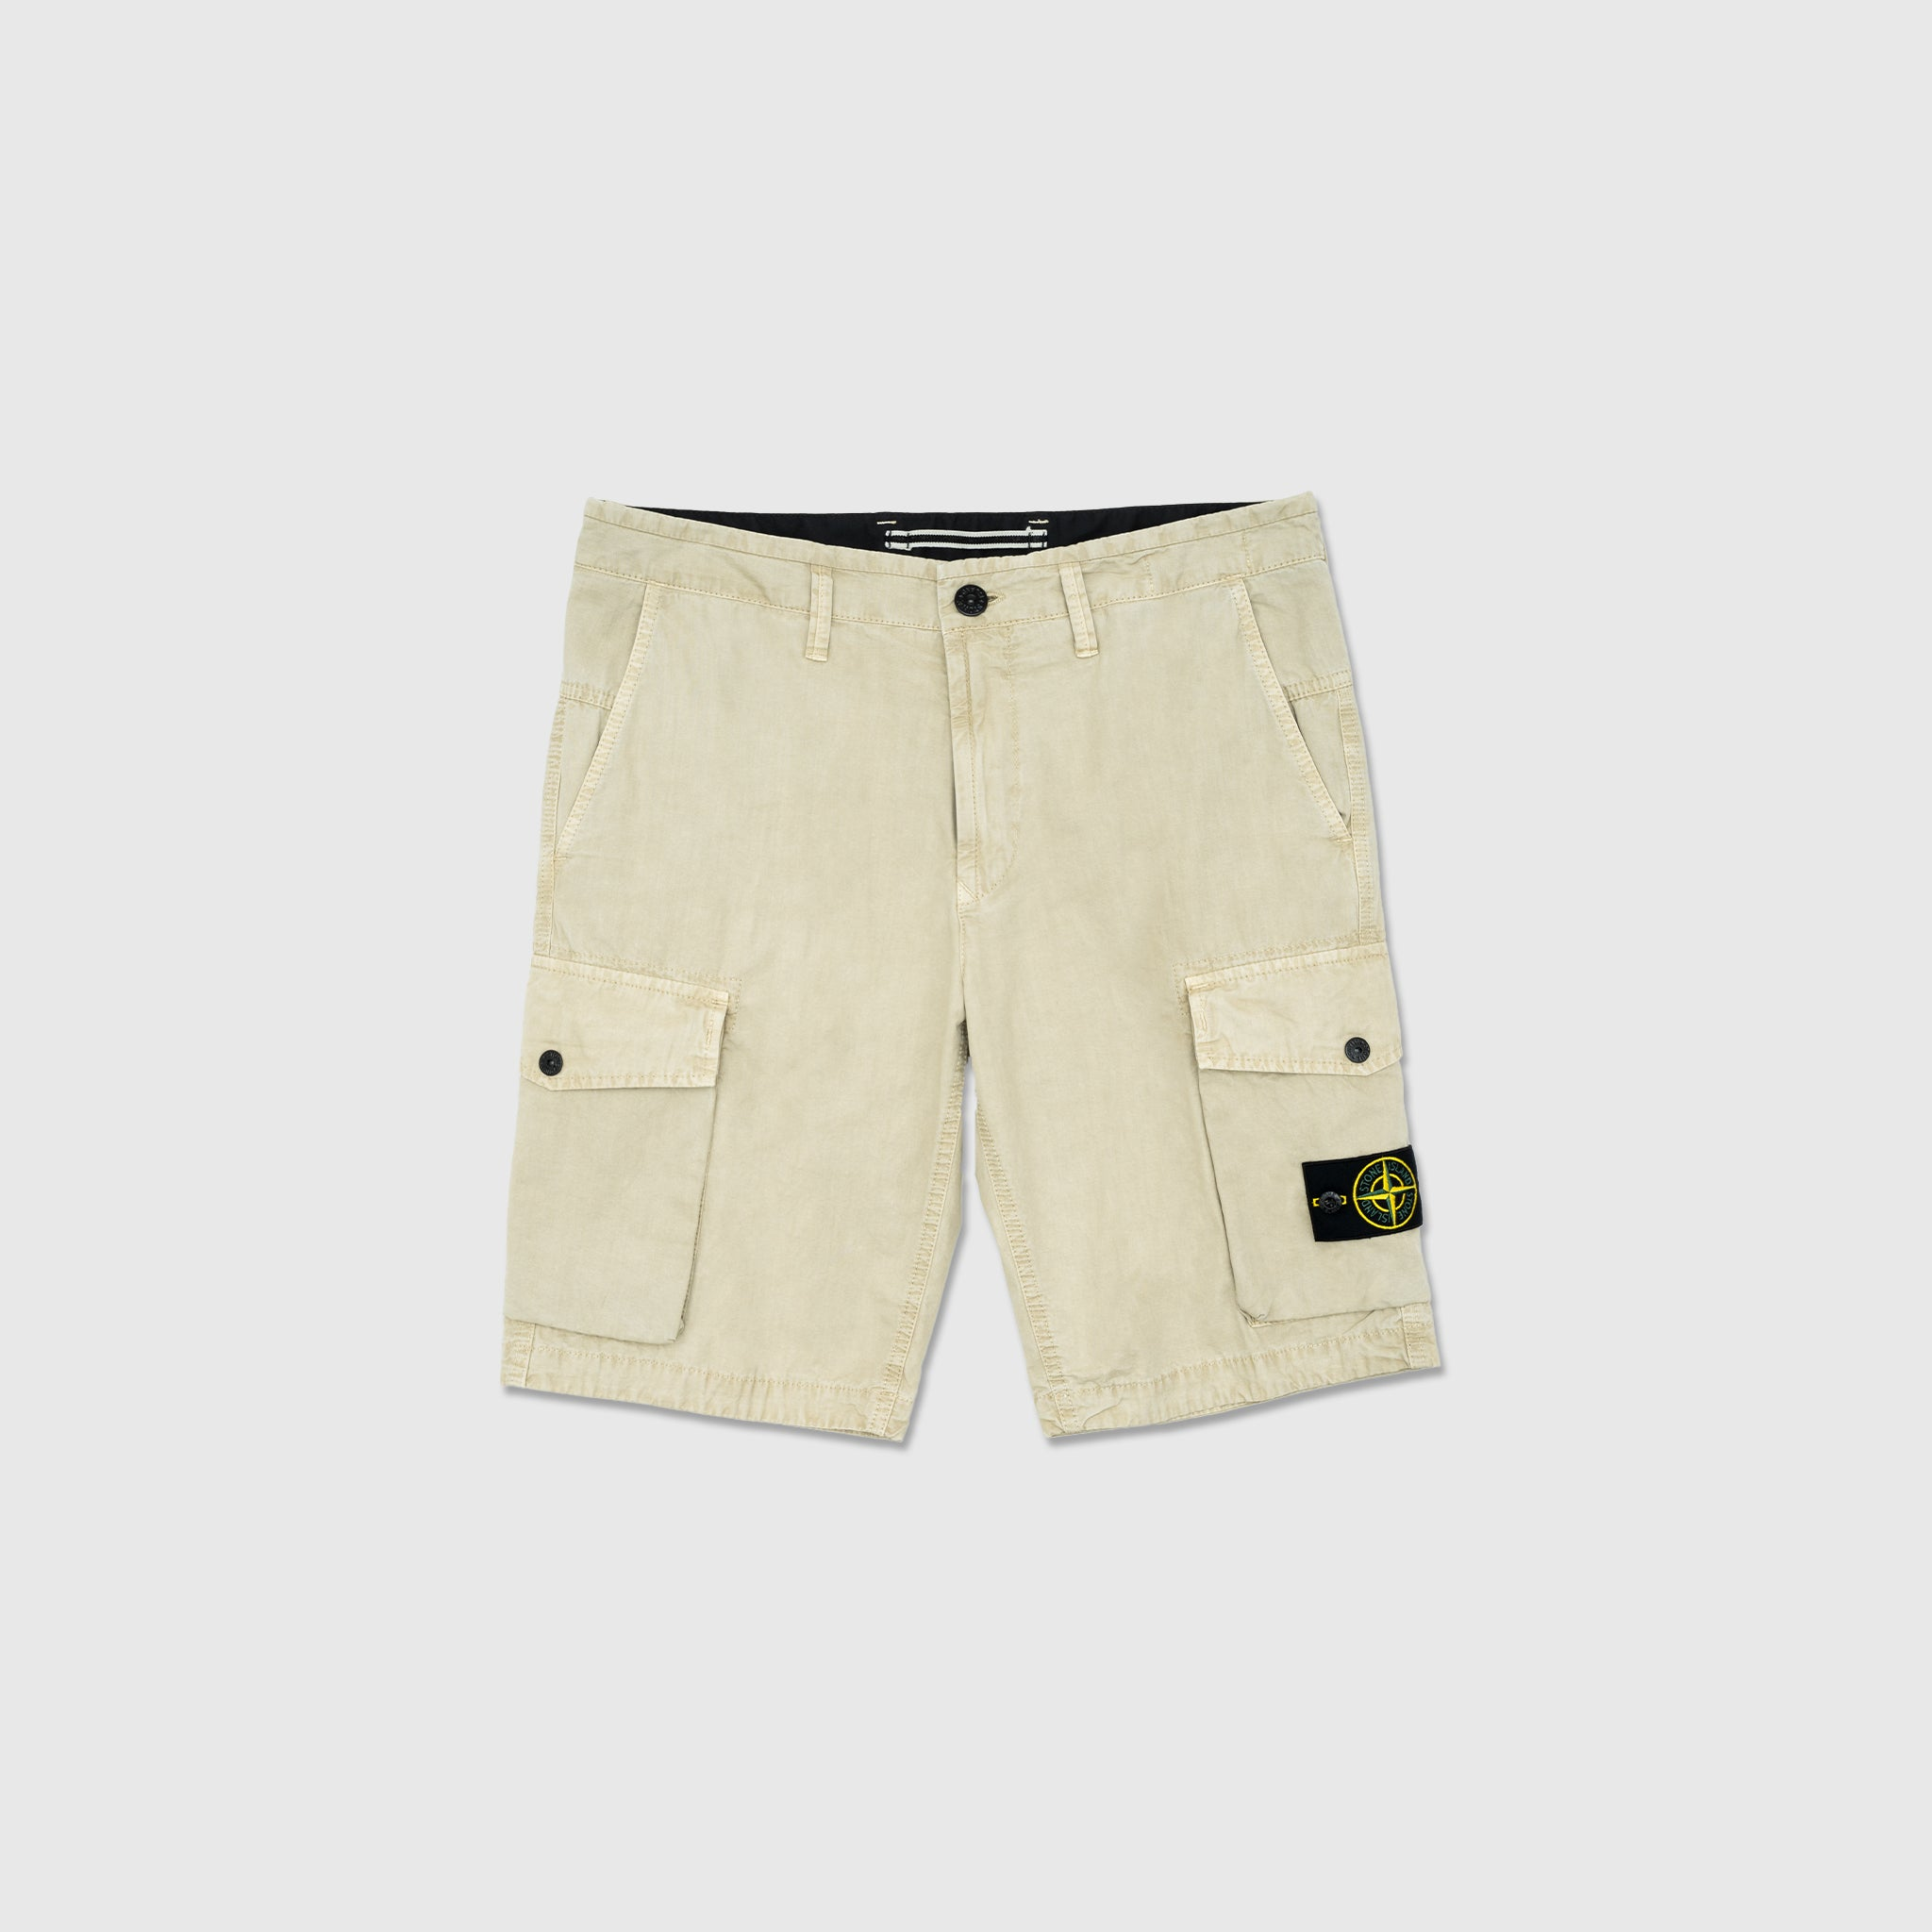 STONE ISLAND T.CO 'OLD' CARGO BERMUDA SHORTS